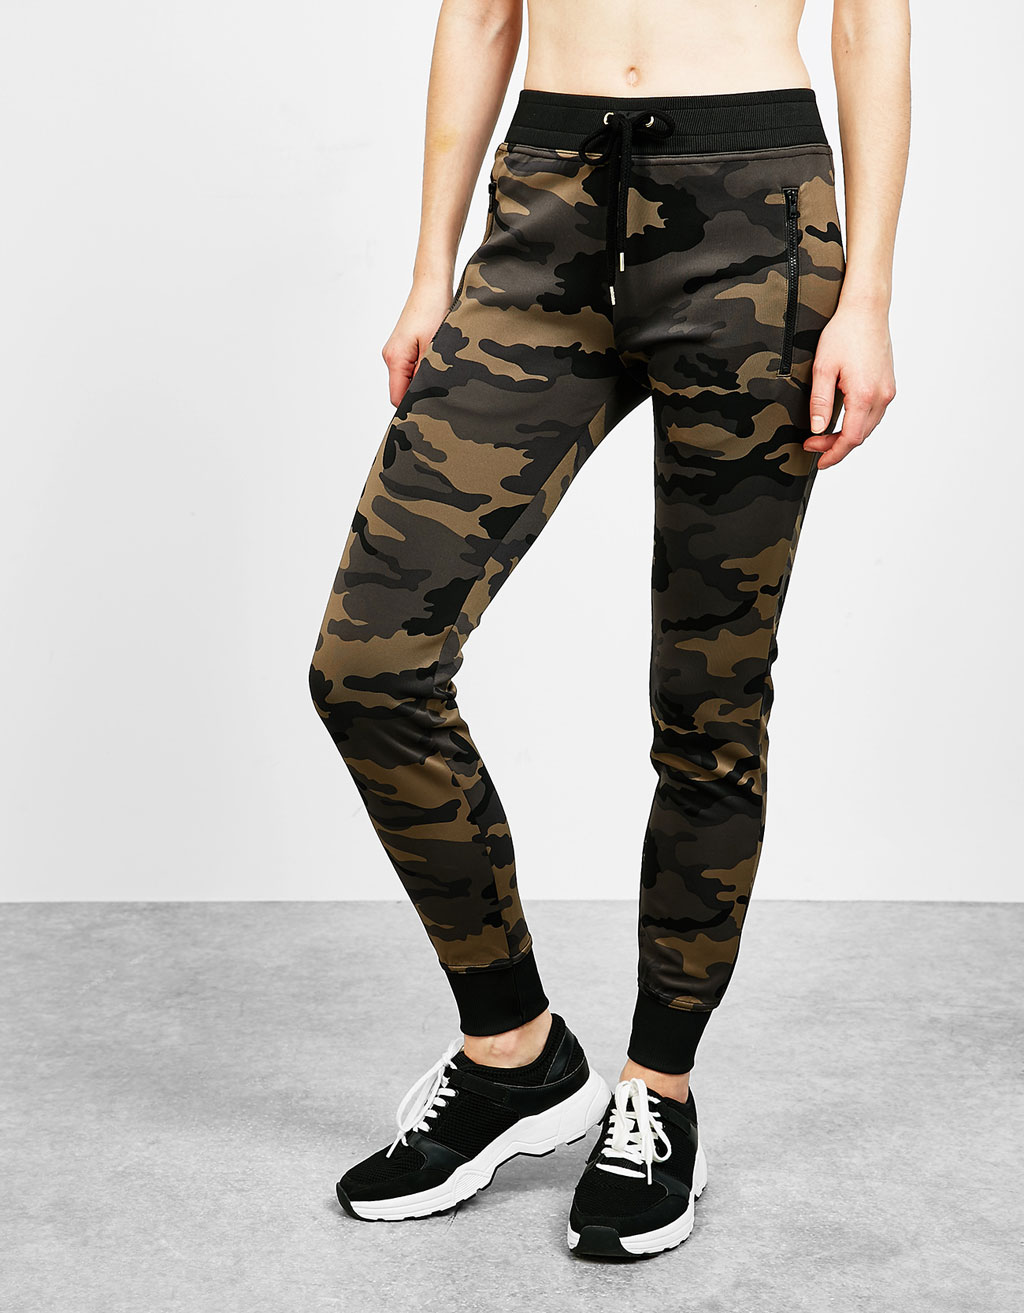 Camouflage neoprene sports trousers